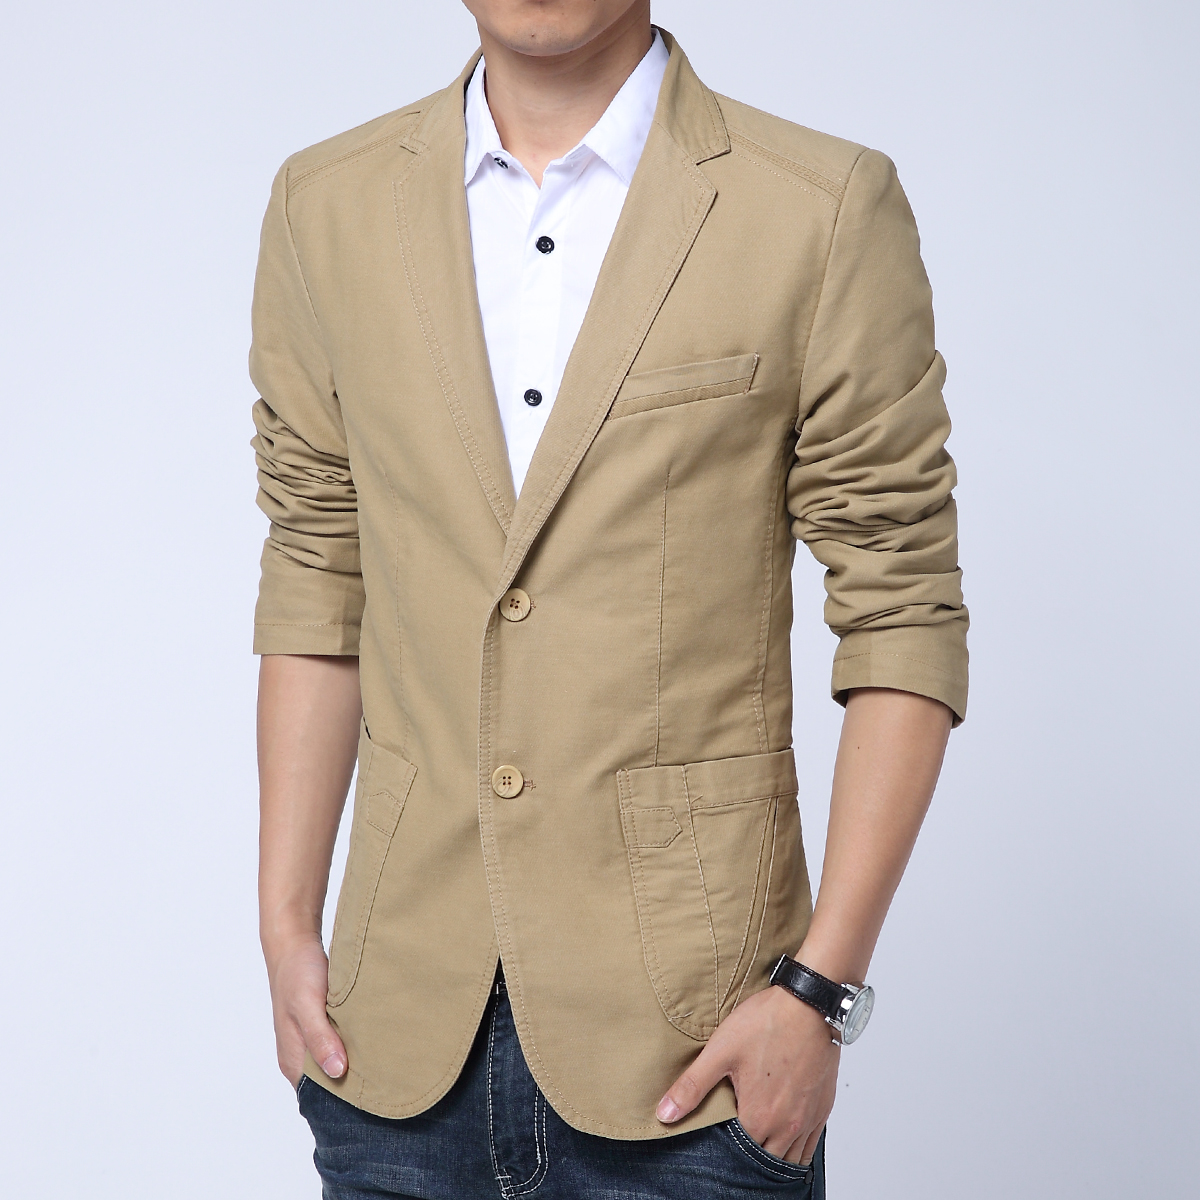 2015 New Arrival Hot Sale!Fashion Youth Pure Color Casual Blazer Men,Long Sleeves Slim fit blazer masculino,Three color men suit(China (Mainland))